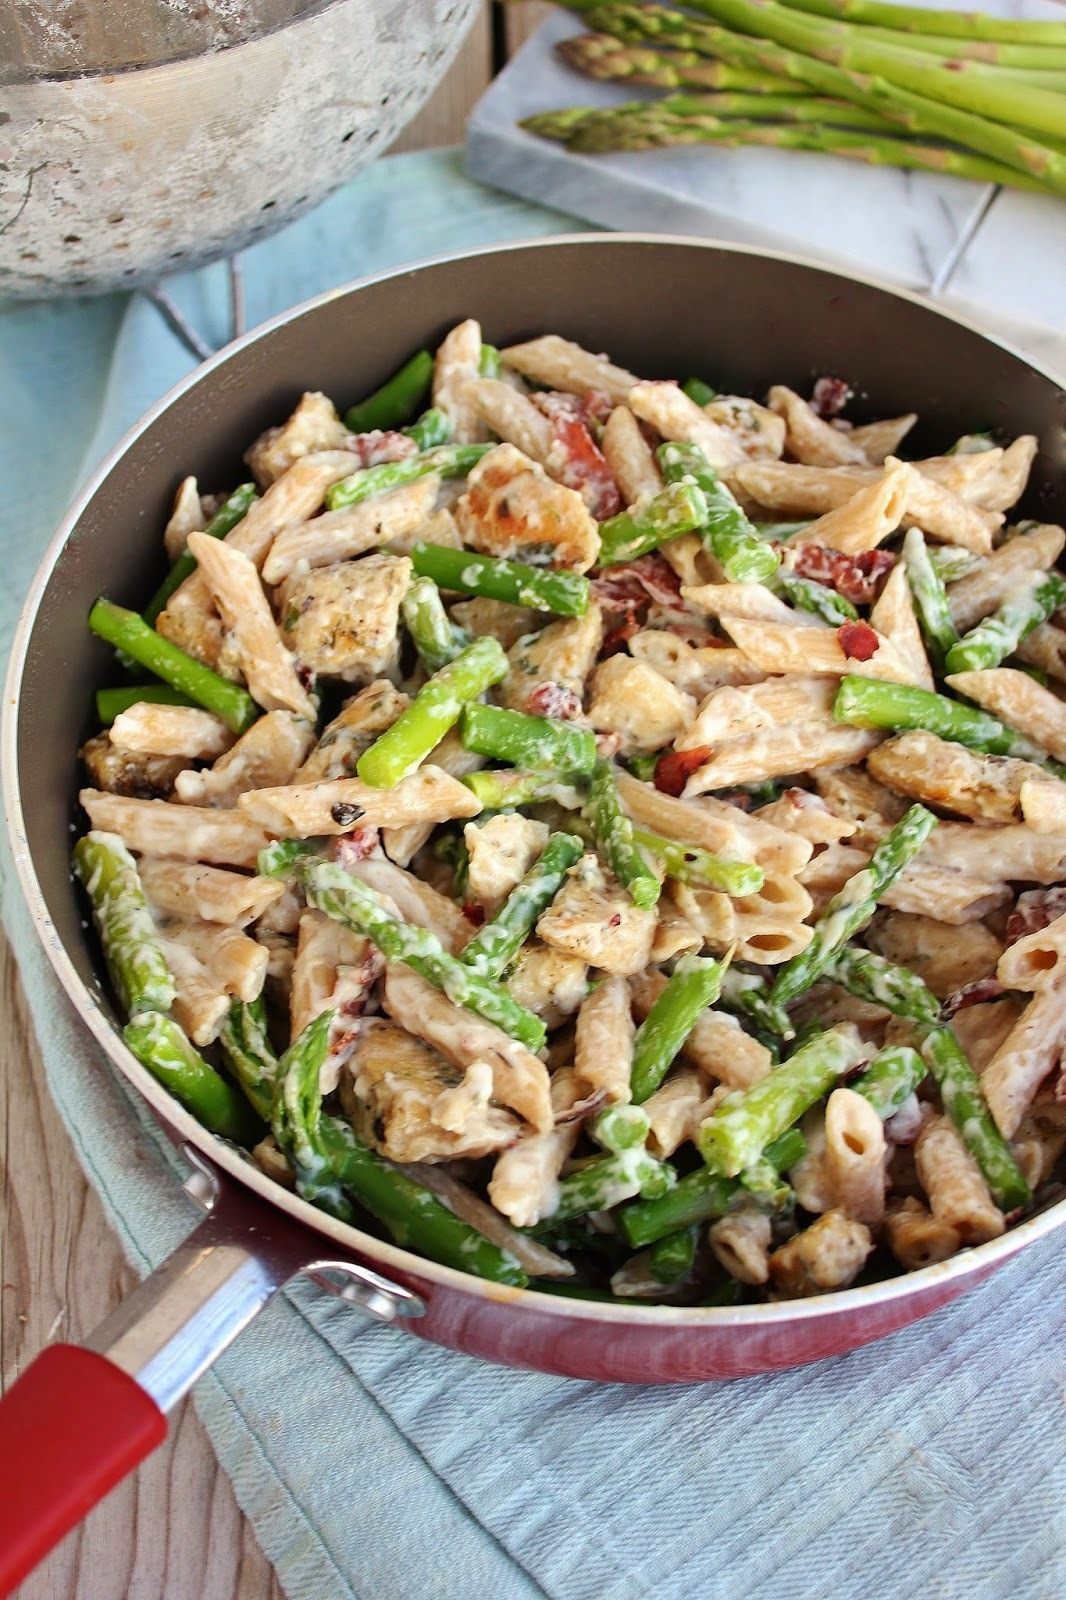 Creamy Chicken and Asparagus with Whole Grain Pasta and Bacon